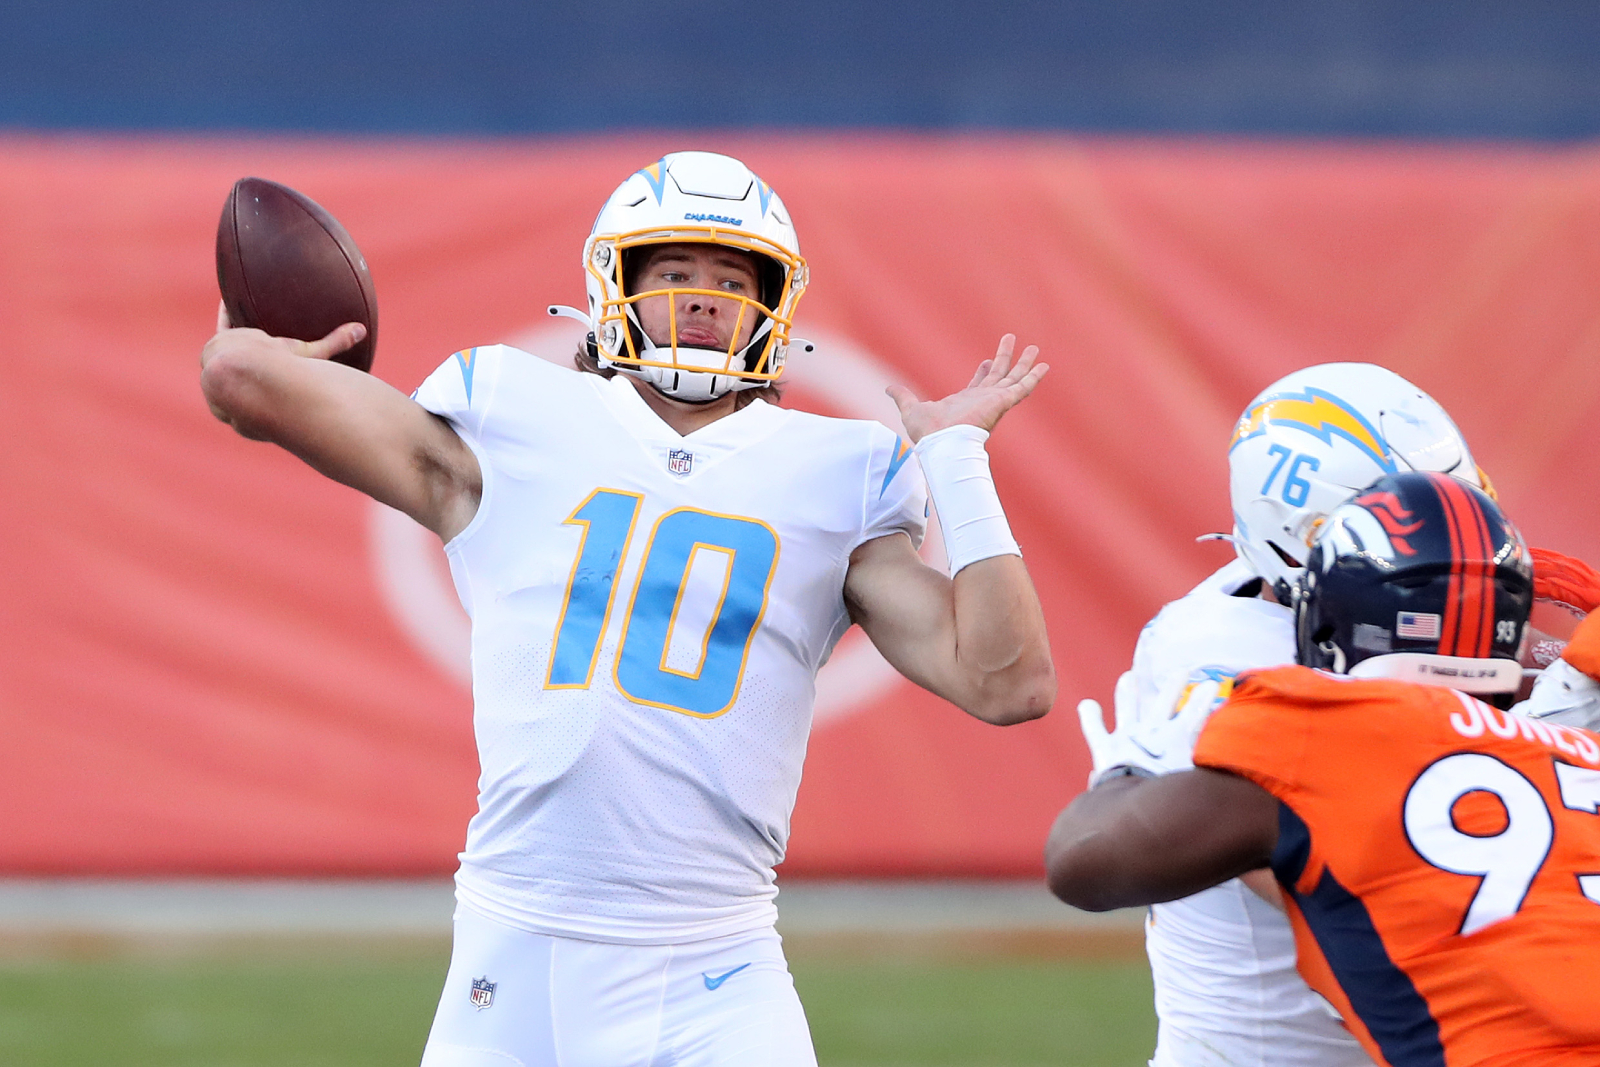 Justin Herbert has had a great start to his NFL career with the LA Chargers. Tony Romo is blown away by the rookie quarterback, too.